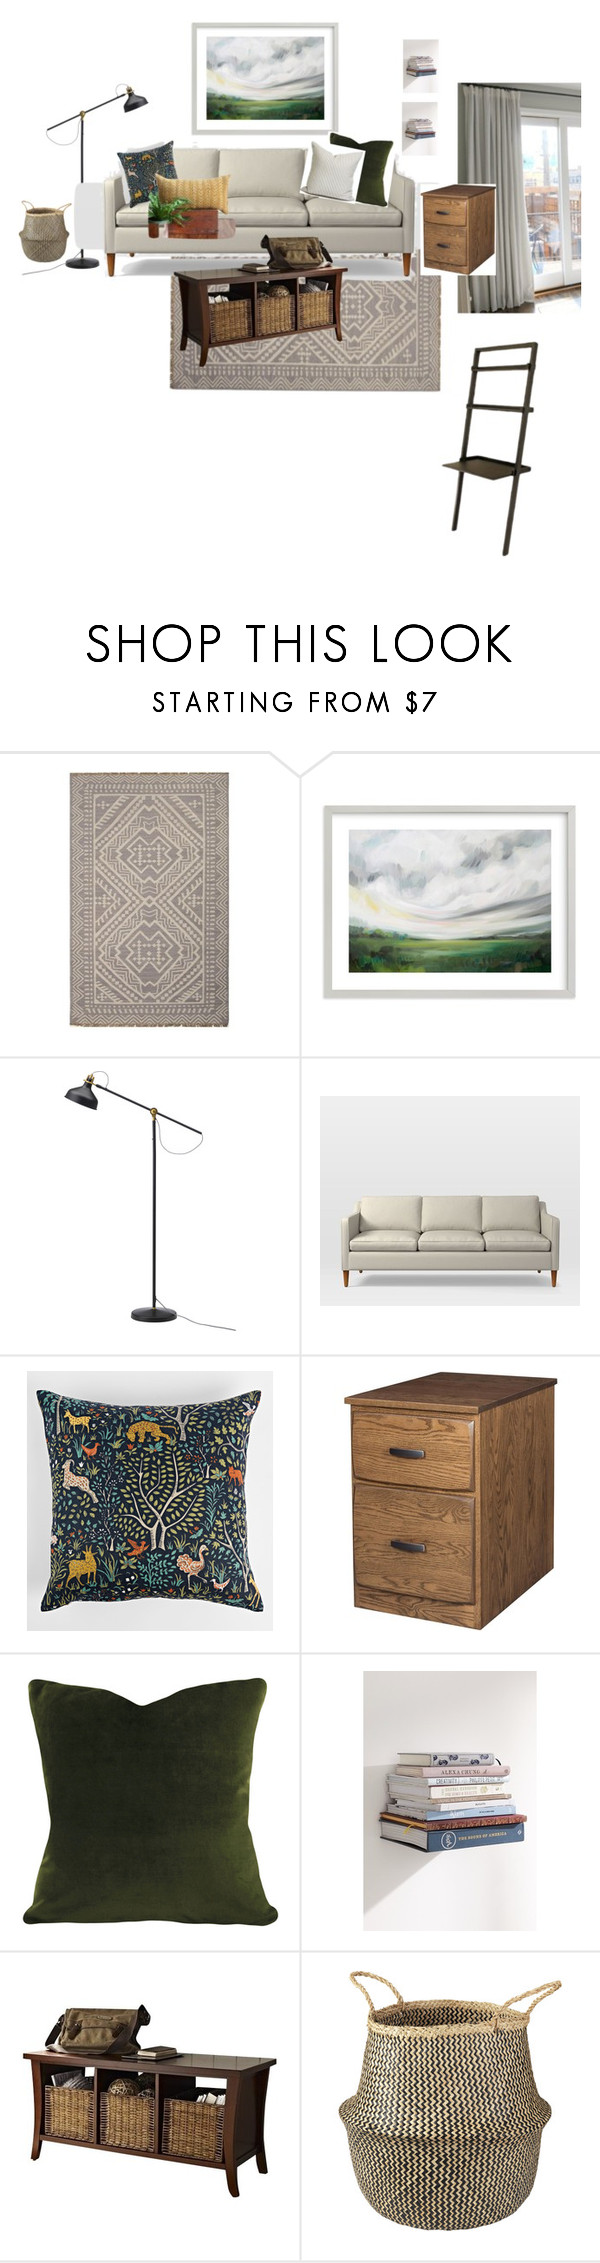 Living room basics by sarahrelk liked on Polyvore featuring